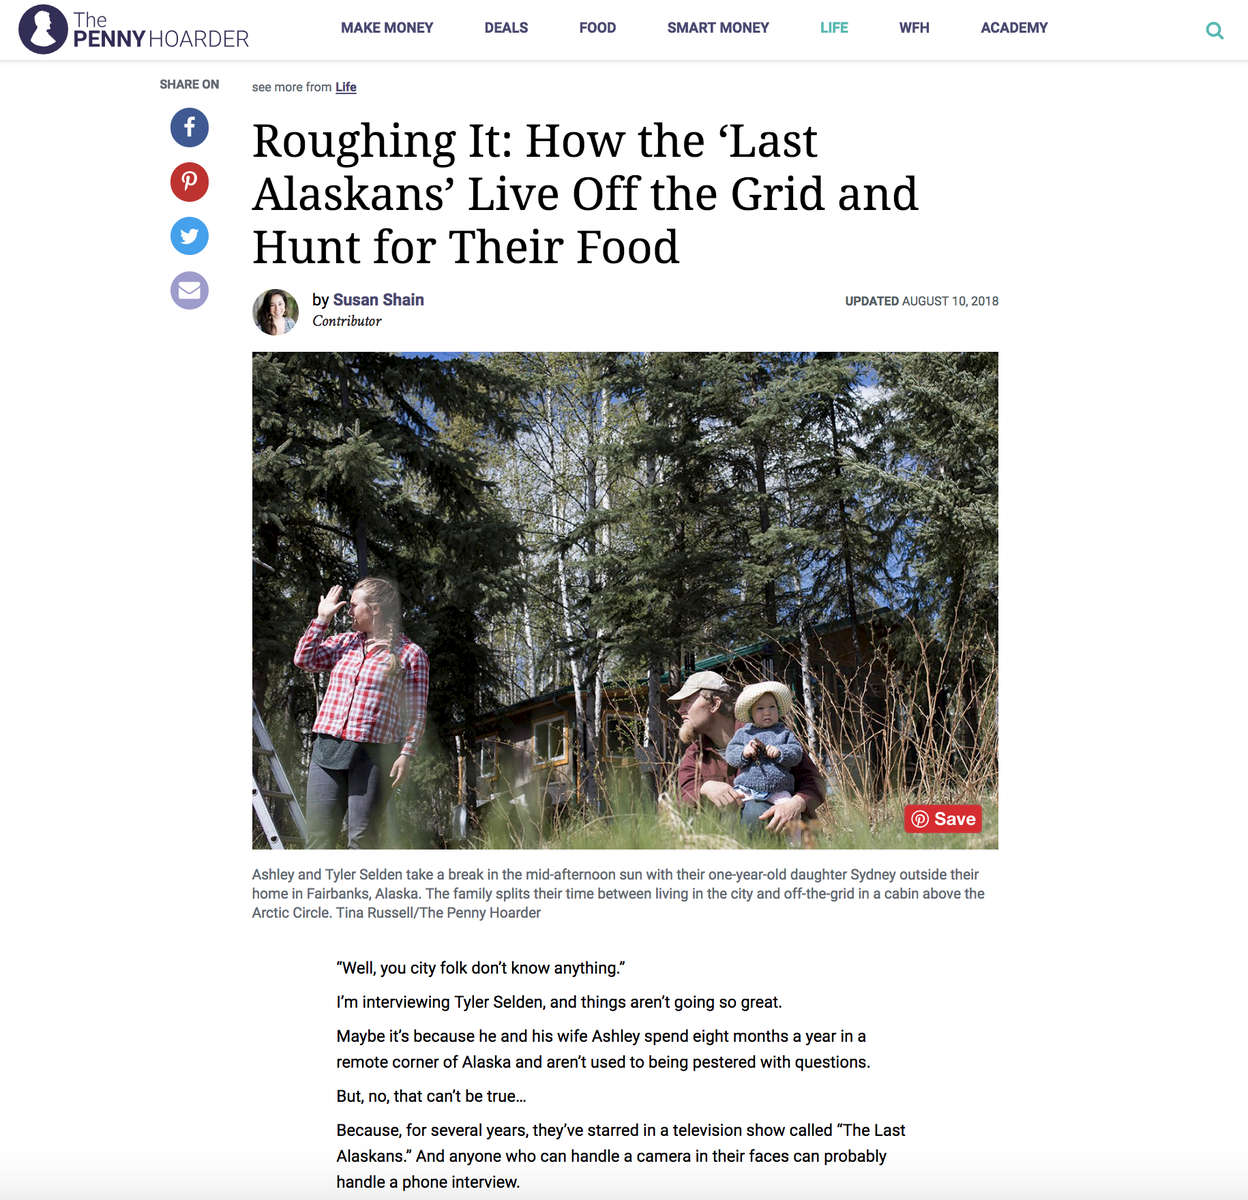 https://www.thepennyhoarder.com/life/alaskans-living-off-the-grid/?aff_id=2&aff_sub2=search